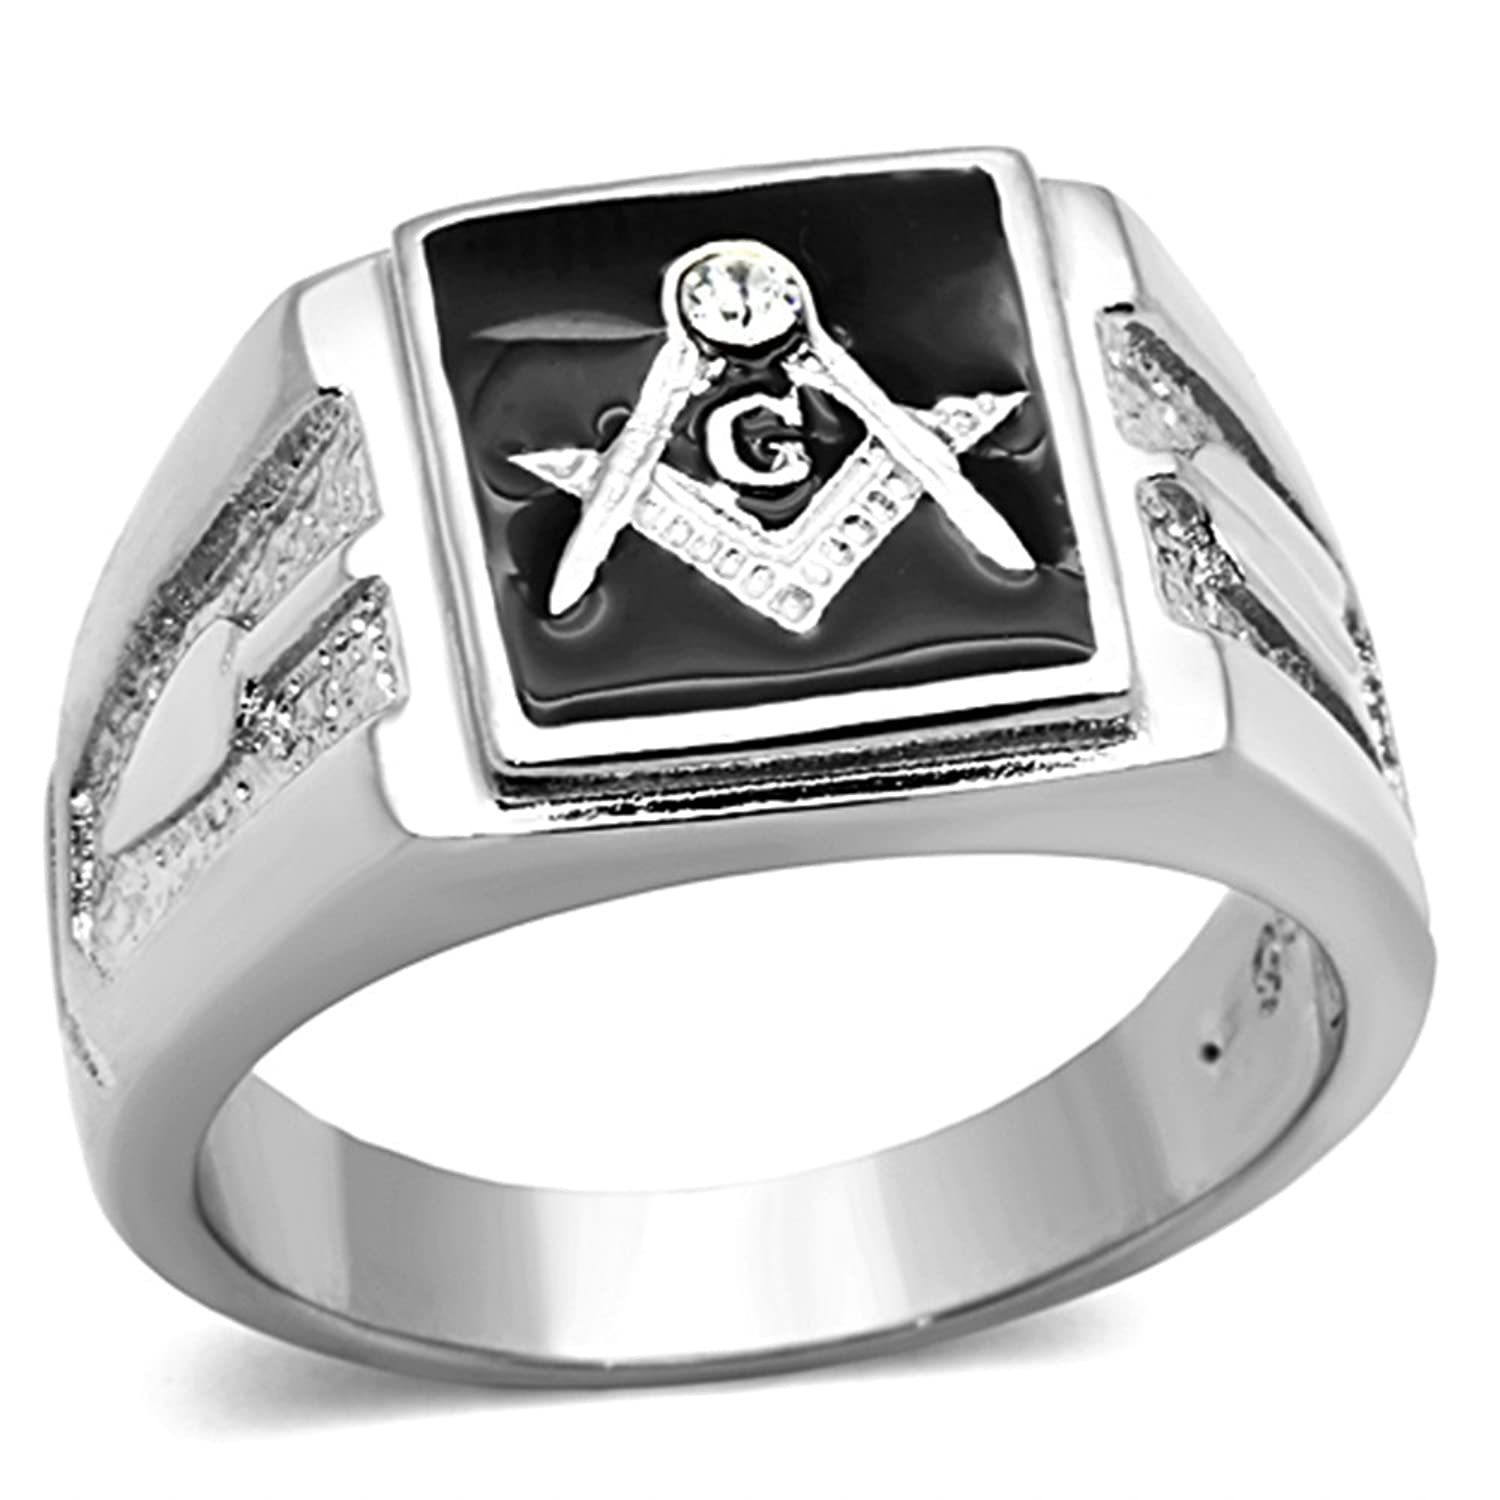 Men s Stainless Steel 316 Crystal Masonic Lodge Freemason Ring